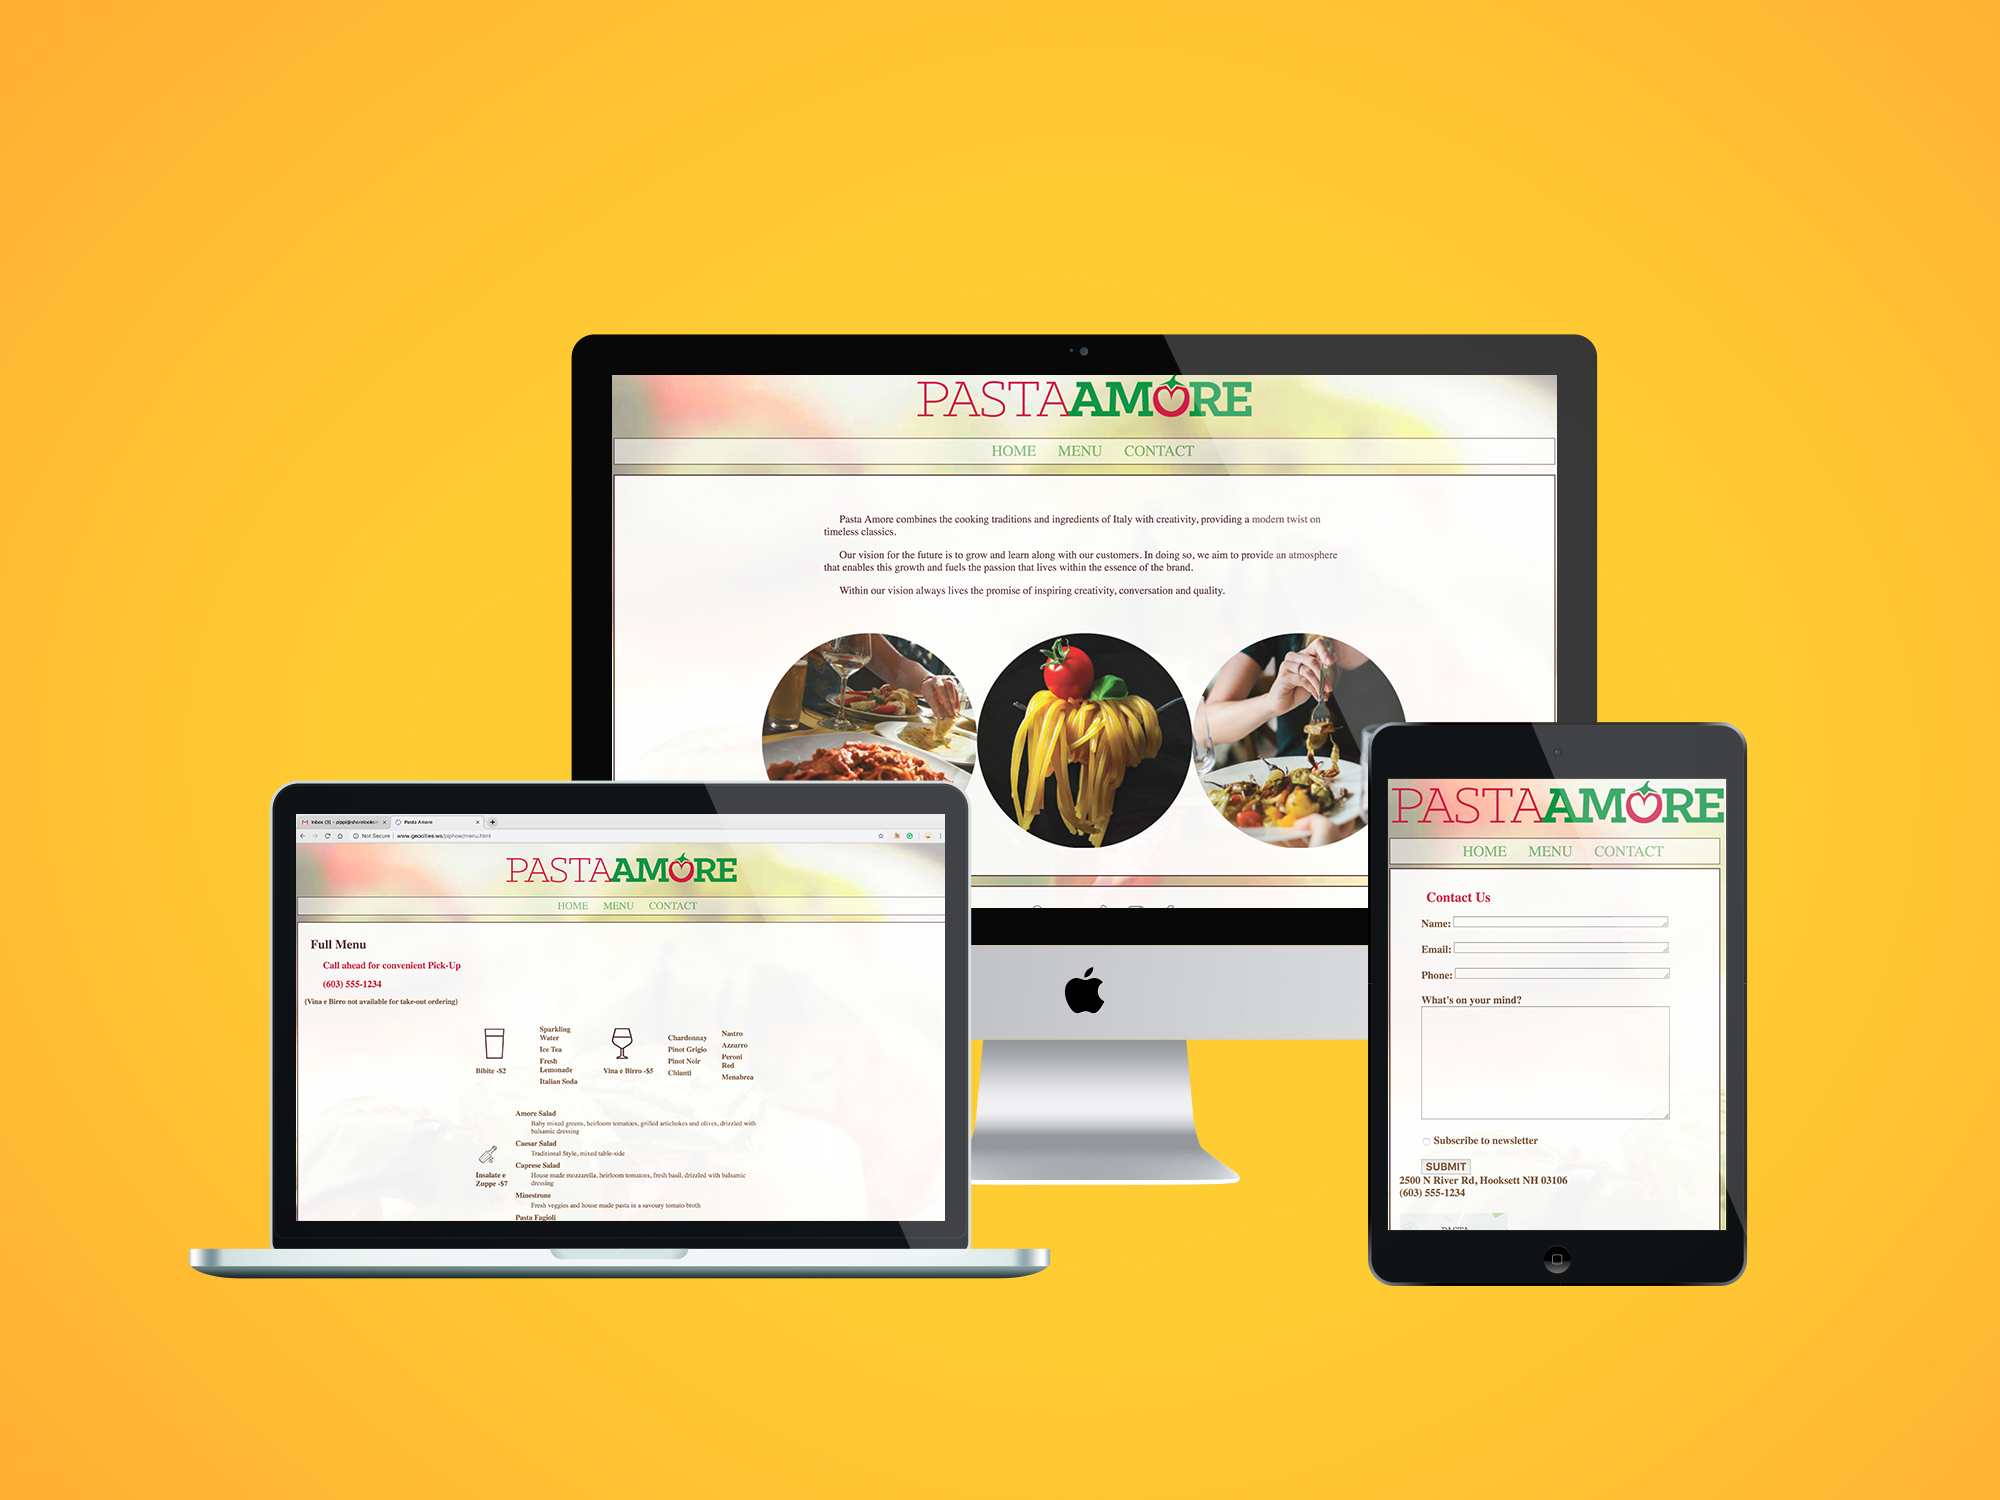 Pasta Amore Website presented on desktop screen, laptop screen, and tablet scree